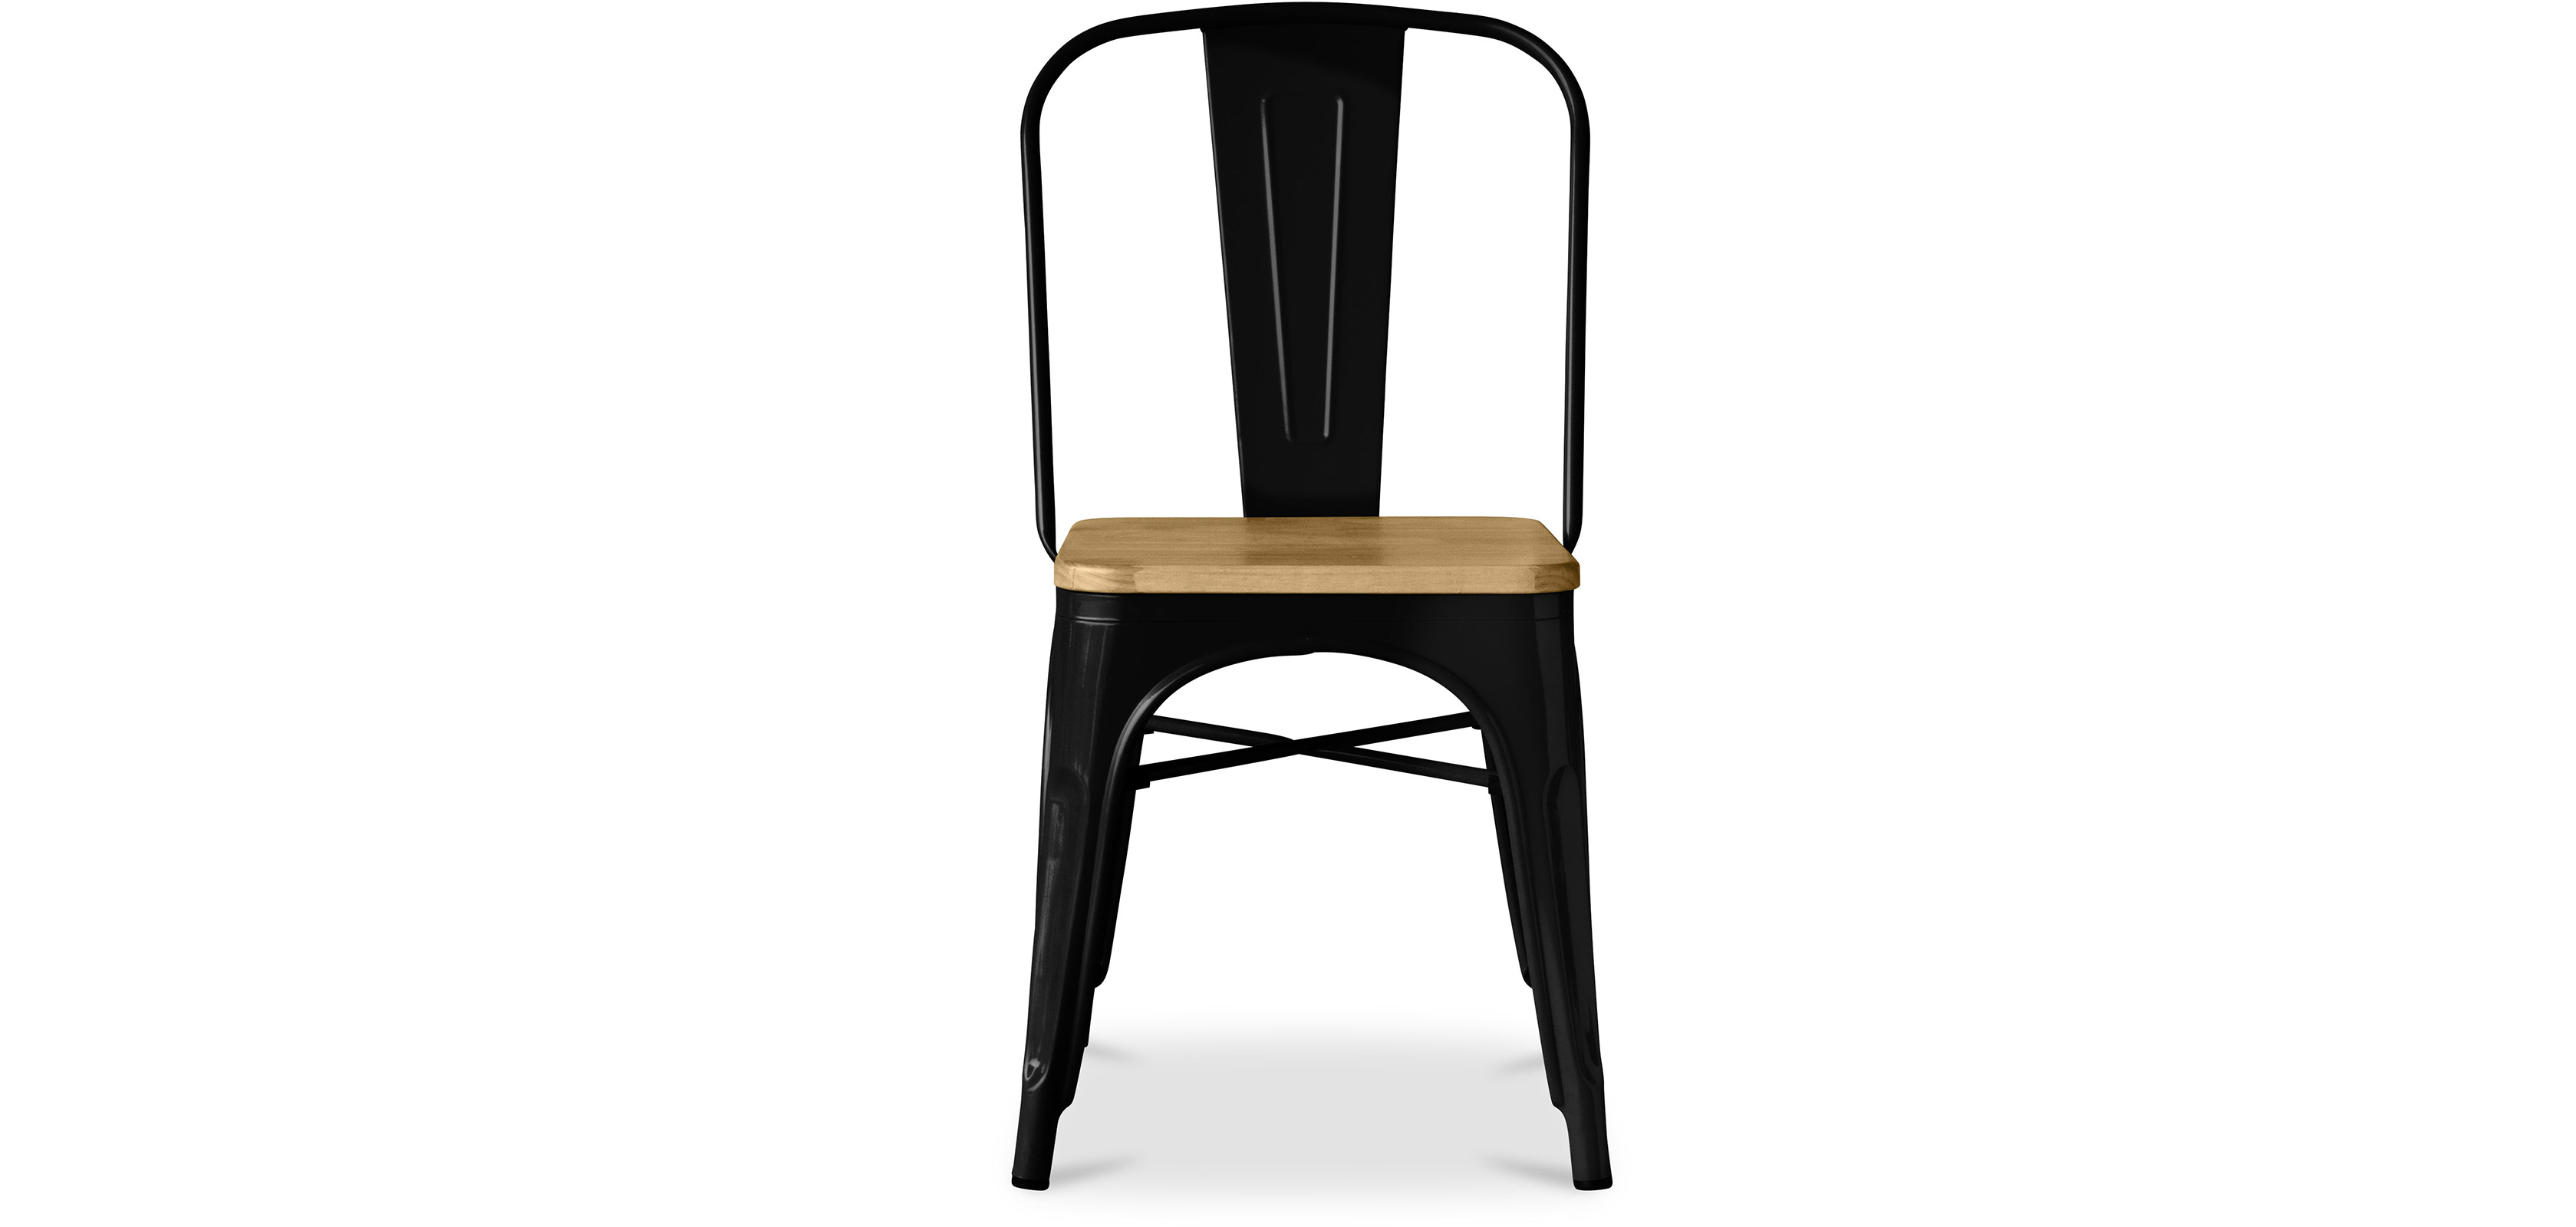 tolix chair square wooden seat xavier pauchard style. Black Bedroom Furniture Sets. Home Design Ideas